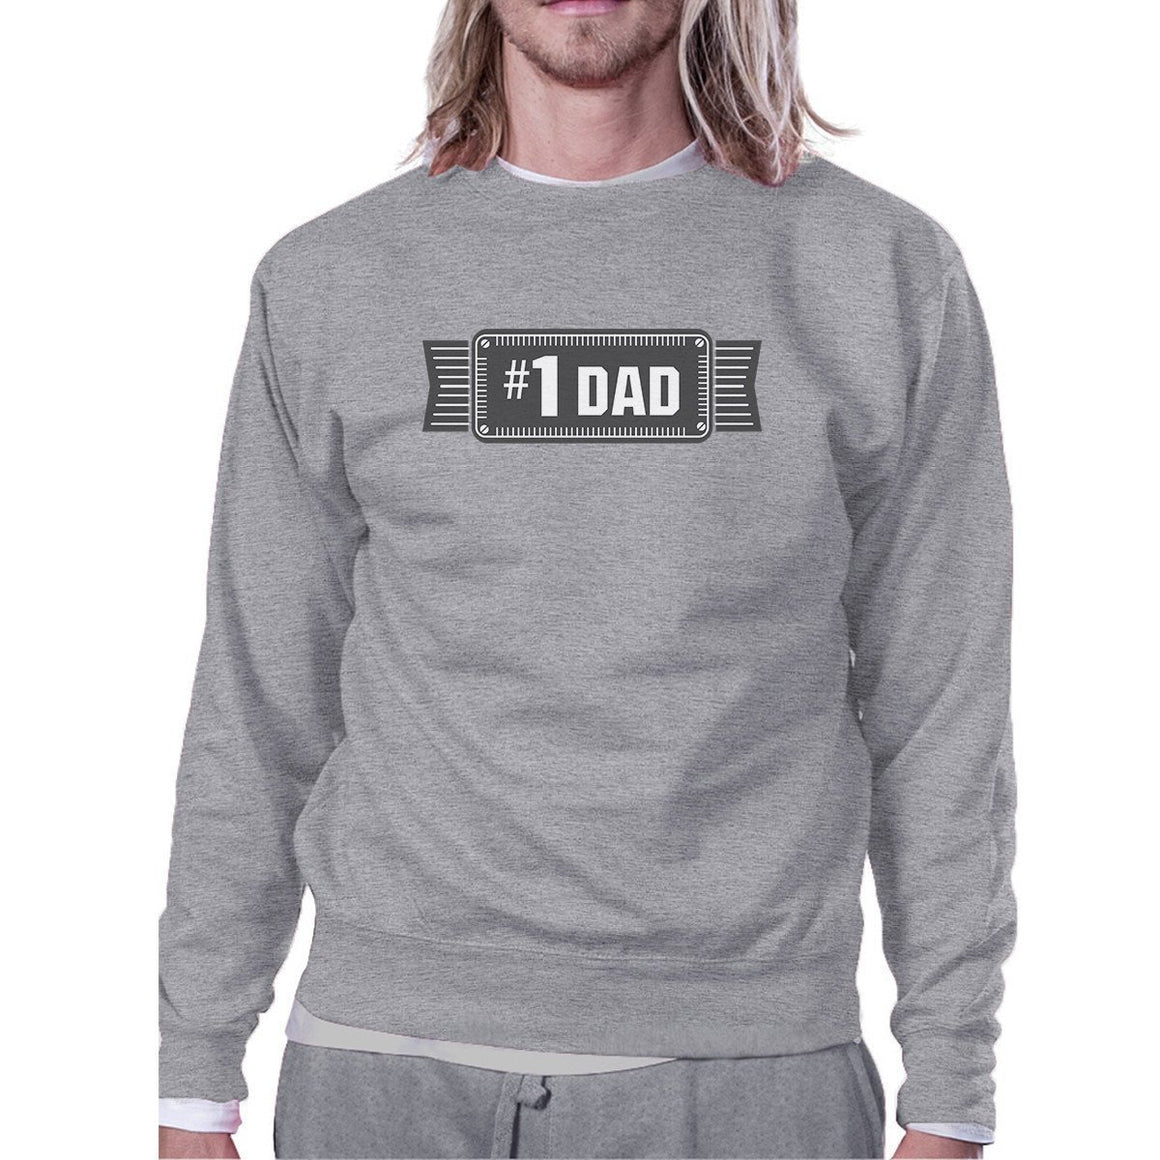 #1 Dad Unisex Grey Pullover Sweatshirt Funny Holiday Gifts For Dad